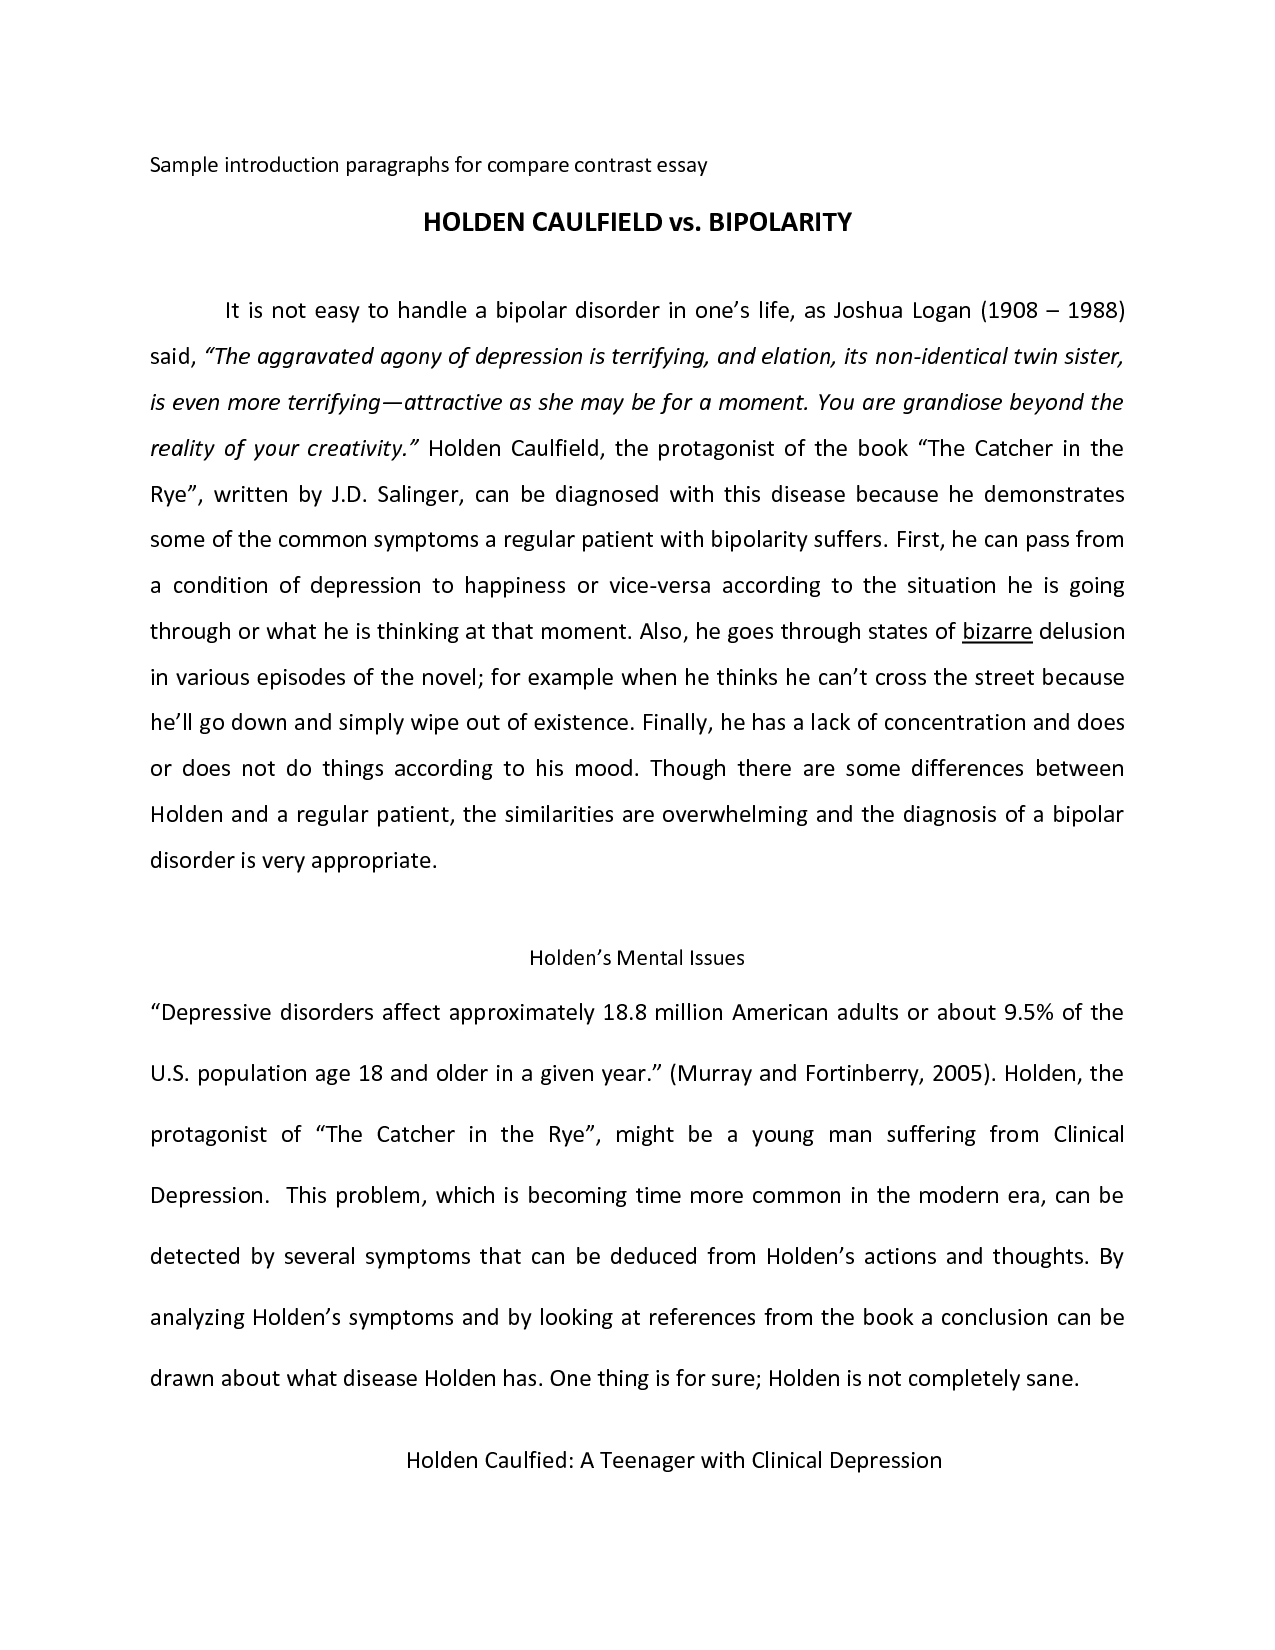 011 Compare And Contrast Essay Introduction Example Collection Of Solutions Examples Comparison Essays Bunch Ideas On L Block Format 4th Grade 5th Food Middle Magnificent Comparison/contrast Sample Paragraph Template Full